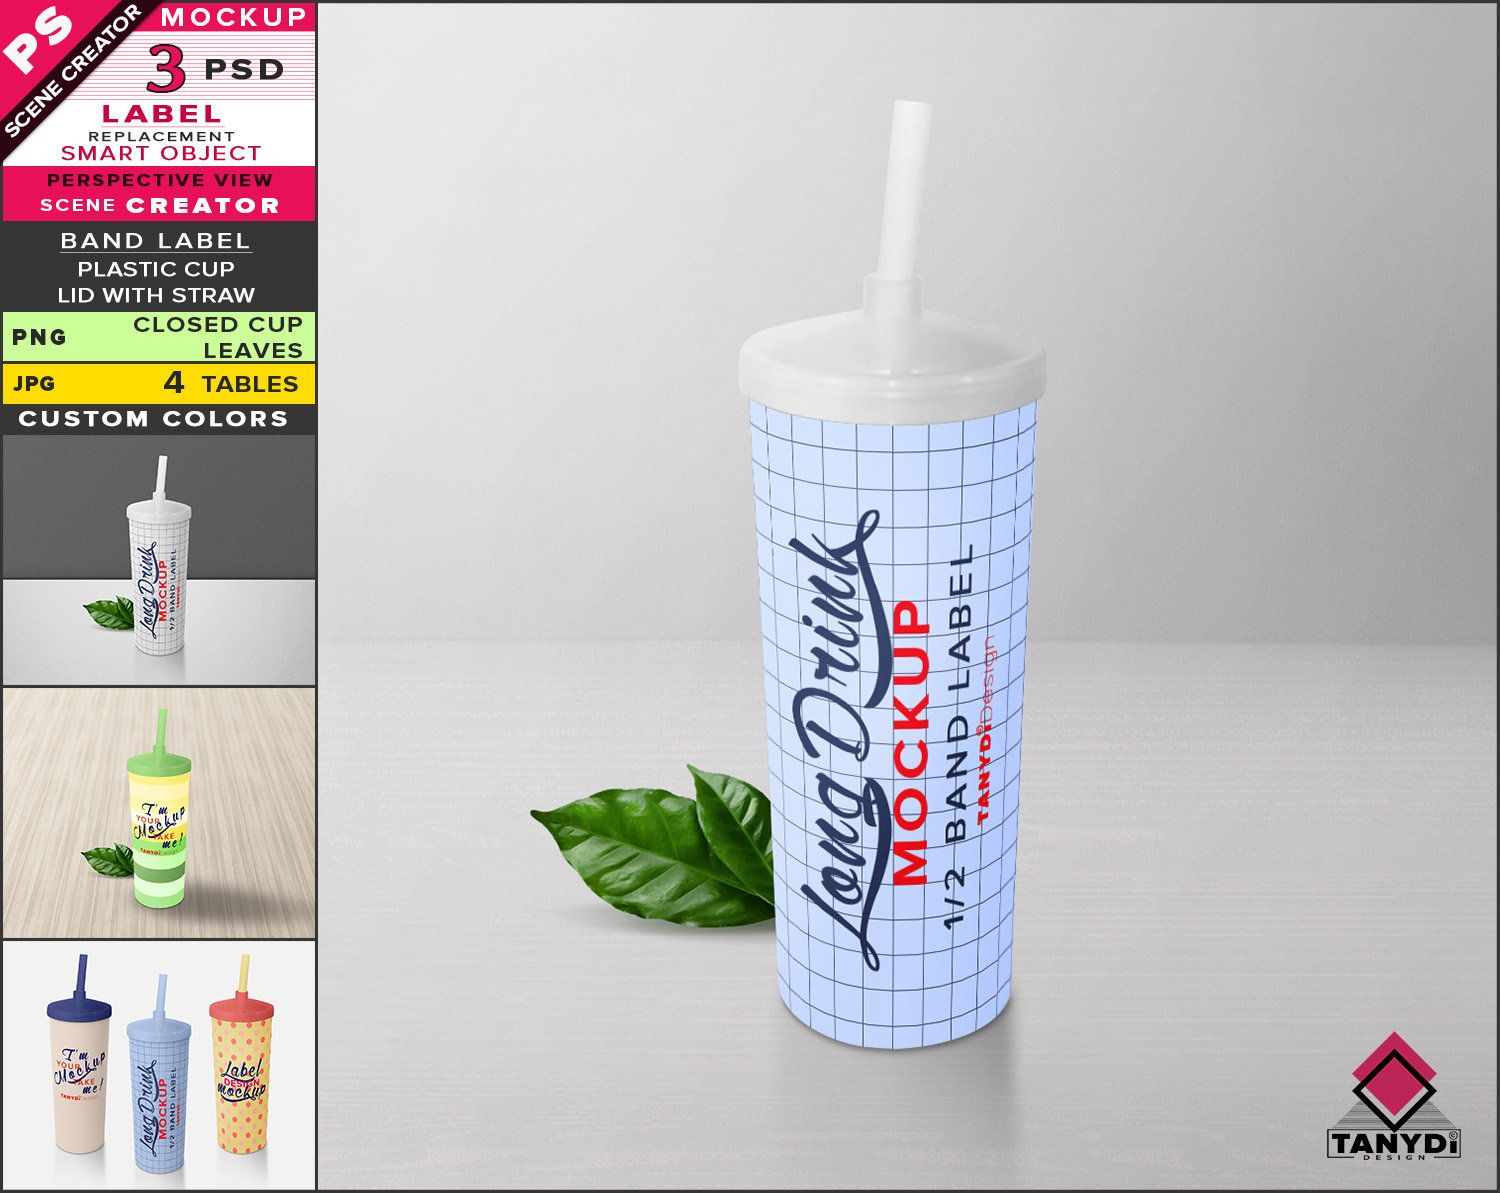 Long Drink Plastic Cup Photoshop Label Mockup Png White Long Closed Cup Straw And Leaves Smart Object Mock Up Cup Scene Creator Scene Creator The Creator Label Cups